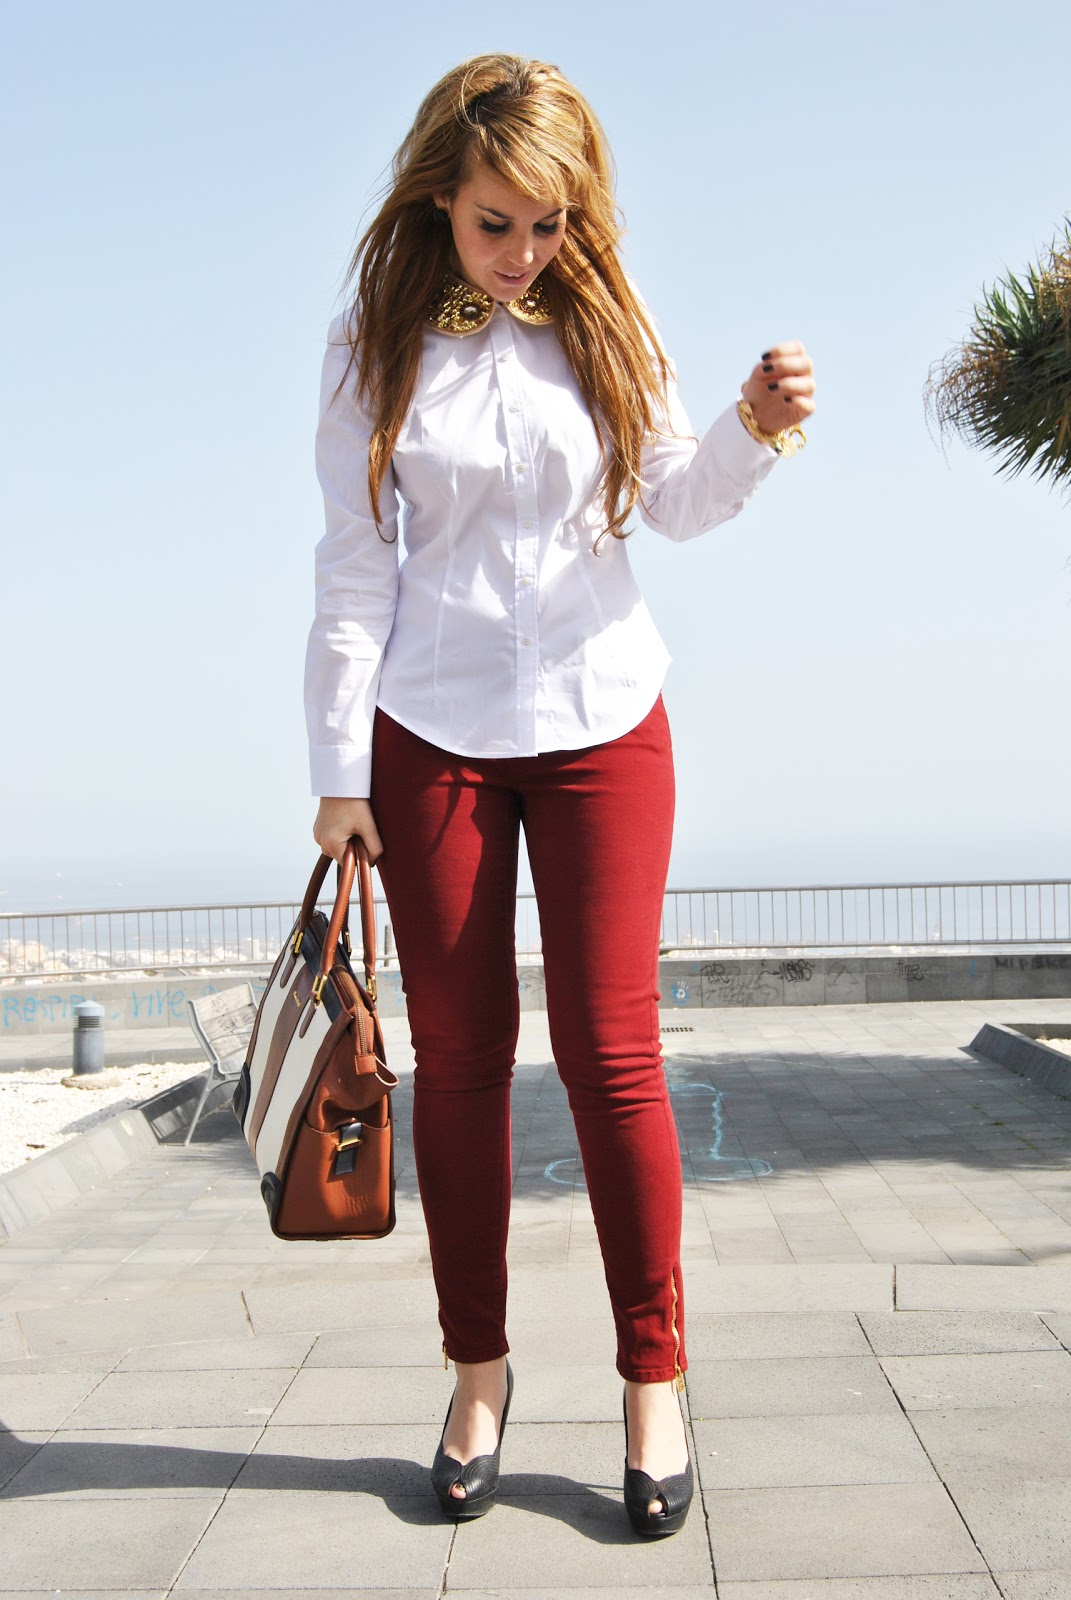 nery hdez, rowme necklace, burgundy pants